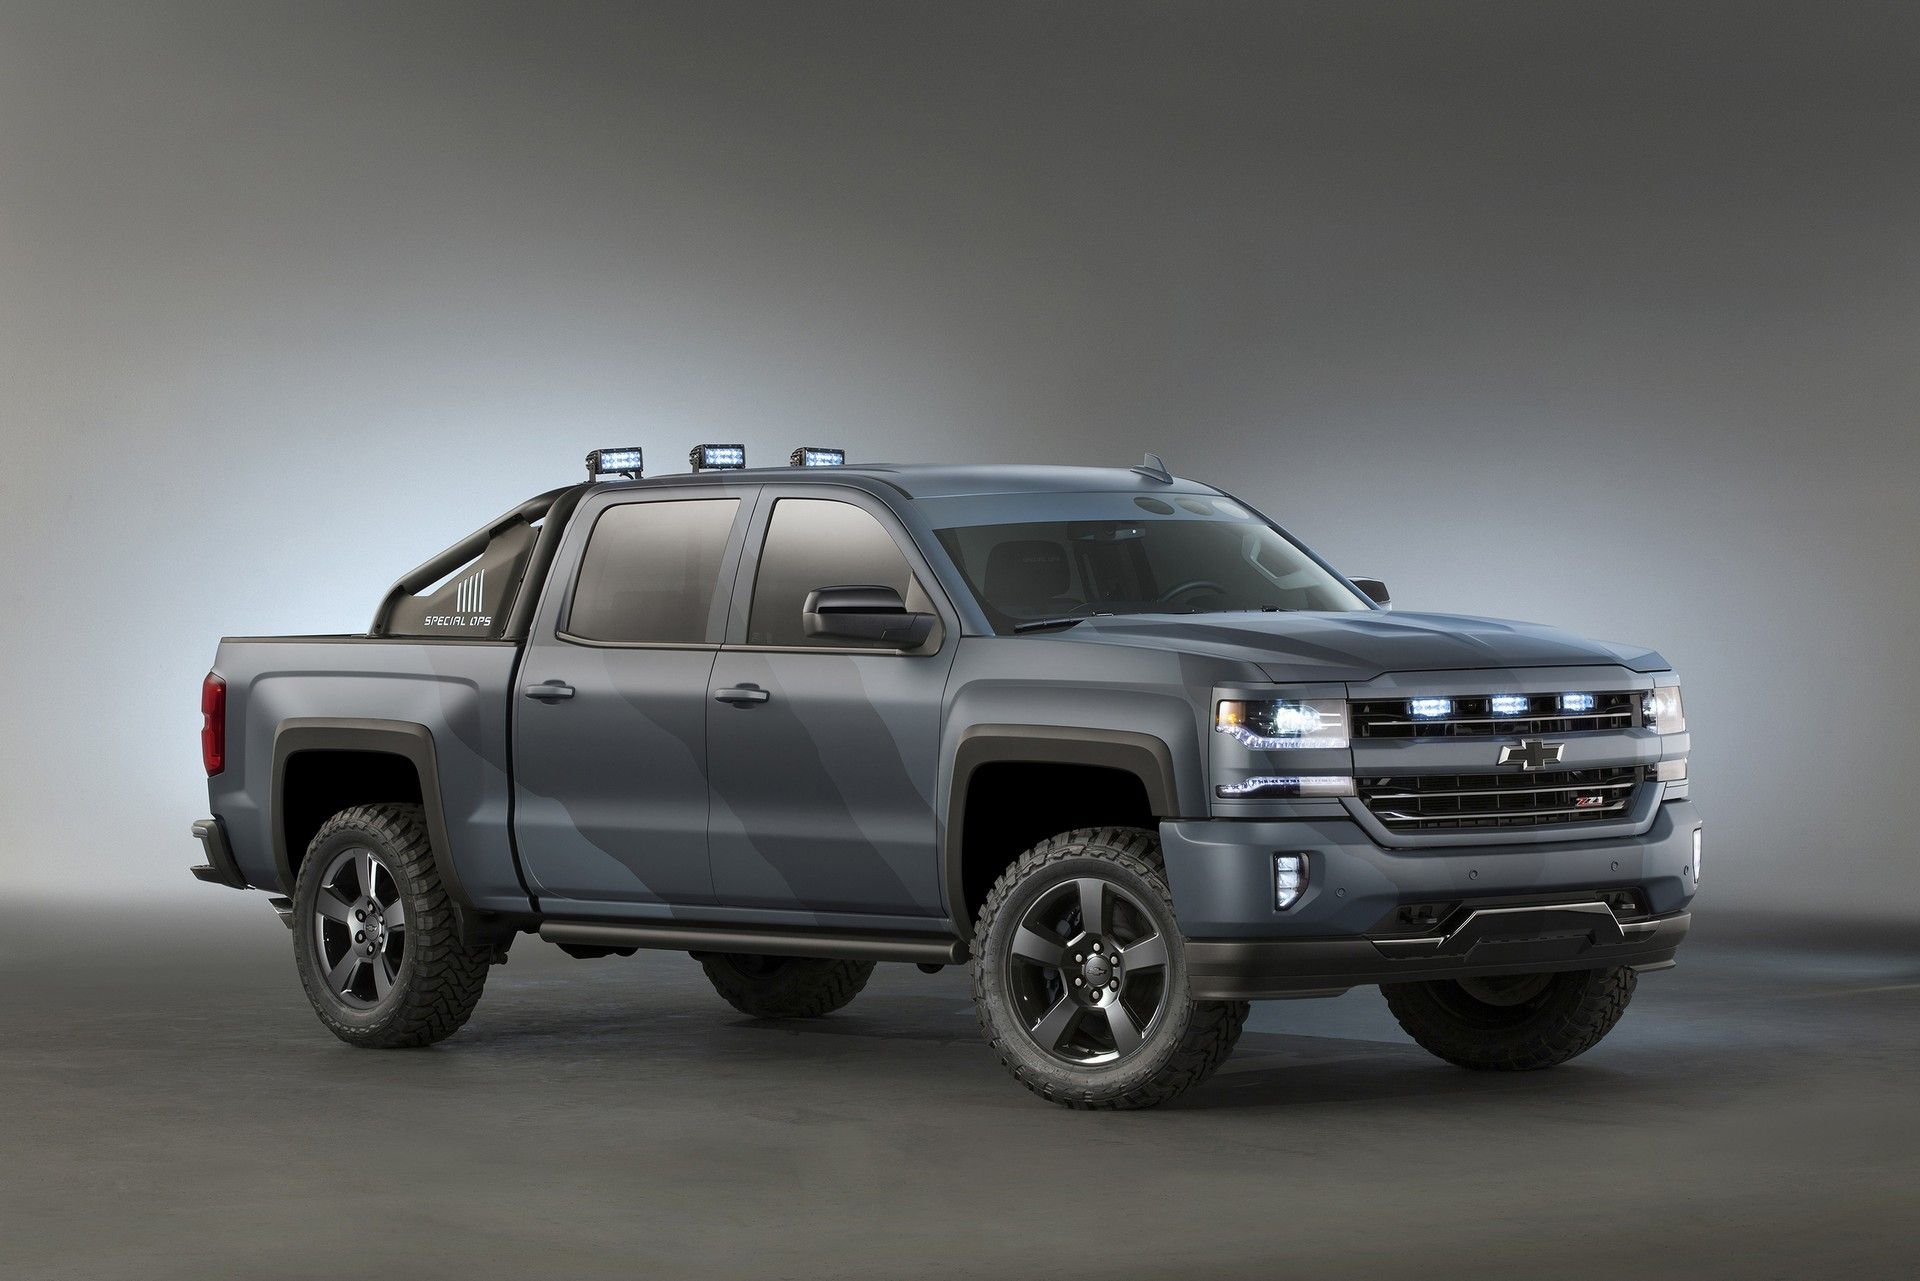 2019 chevy avalanche review | cars and trucks | pinterest | chevy